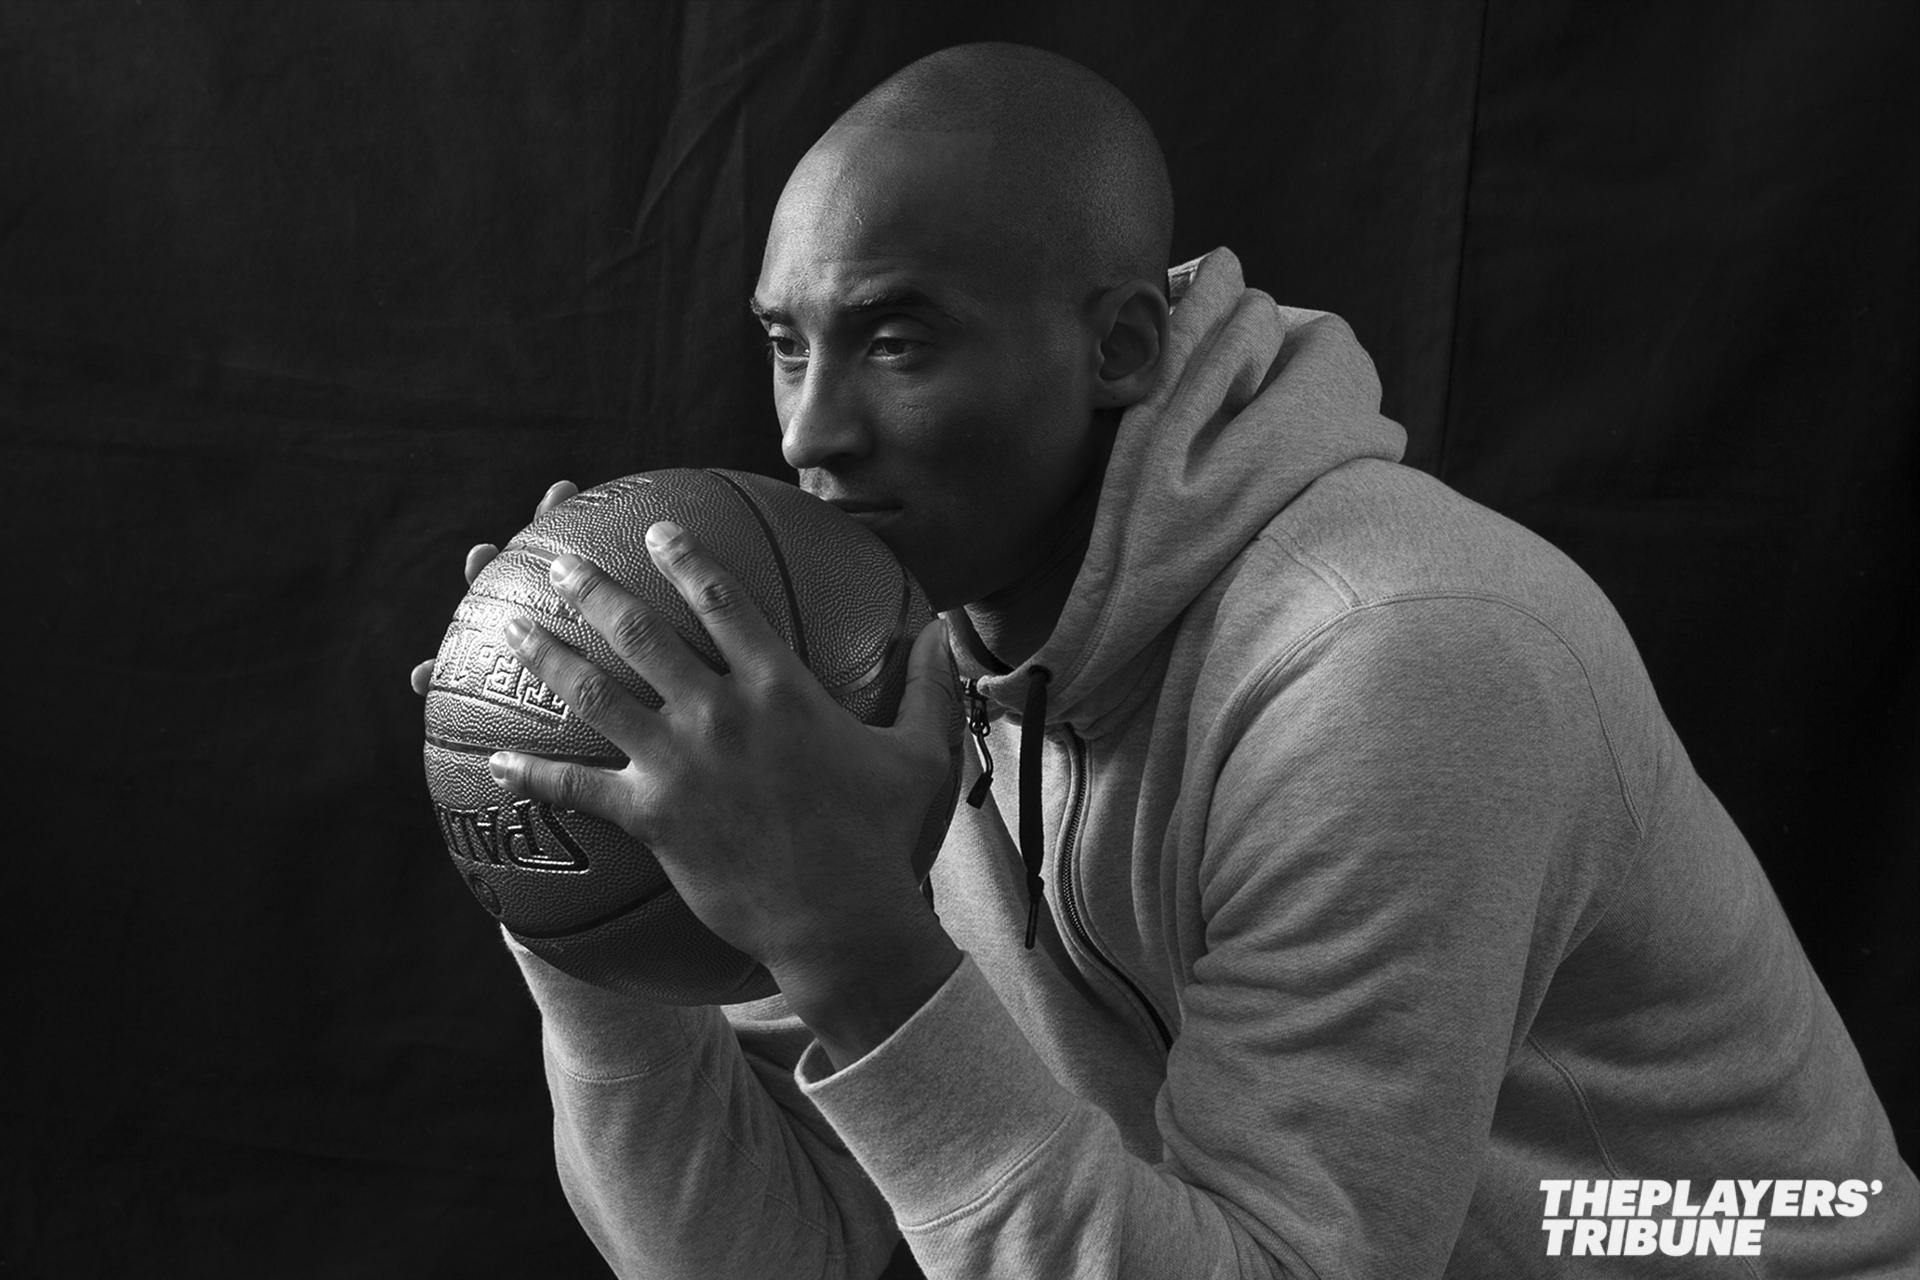 Thumbnail for The Players' Tribune Website